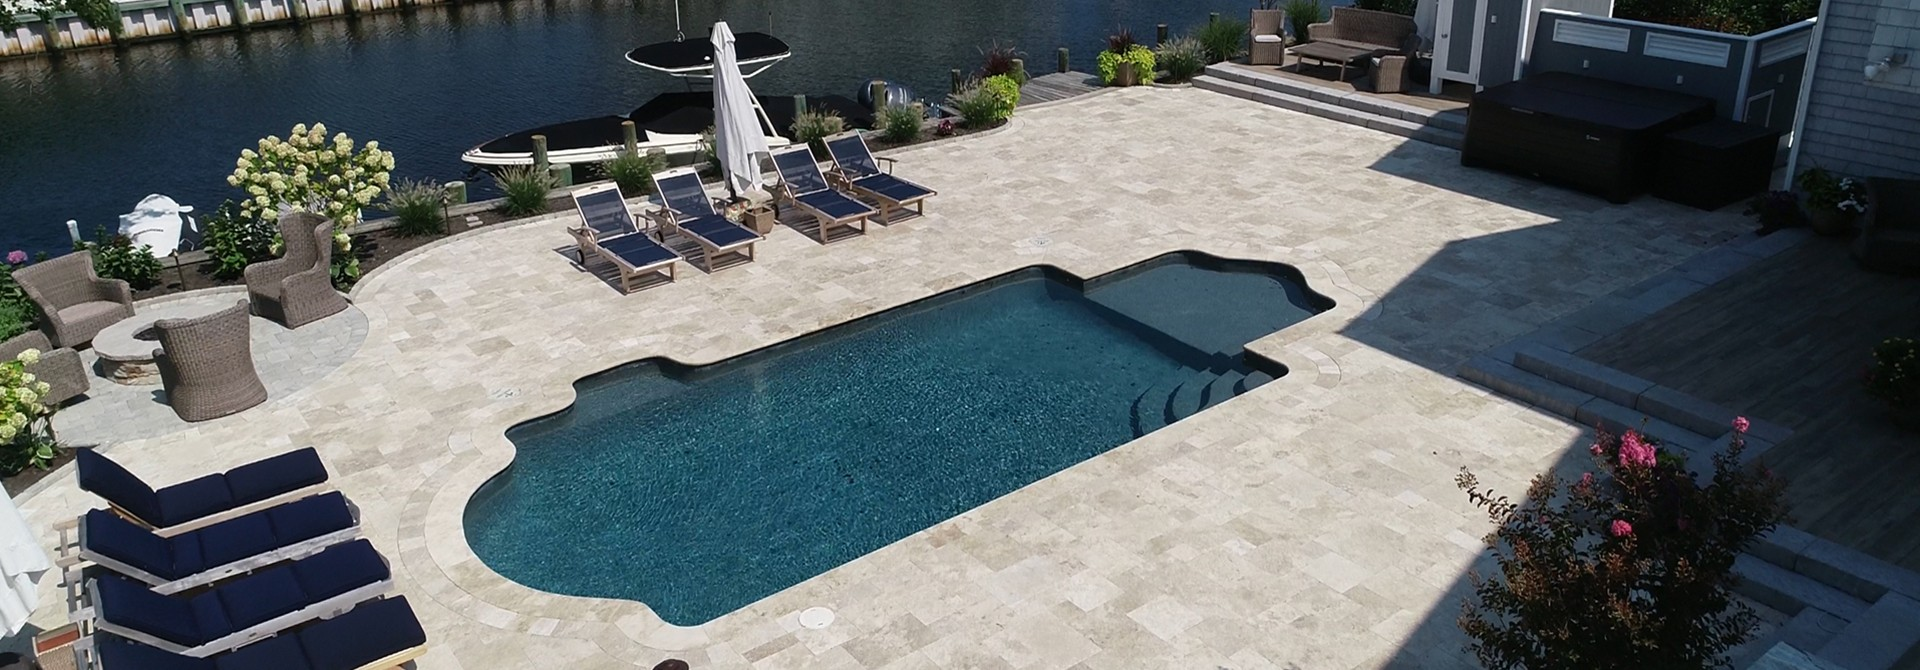 Walnut Travertine and R.Impero Porcelain Paver